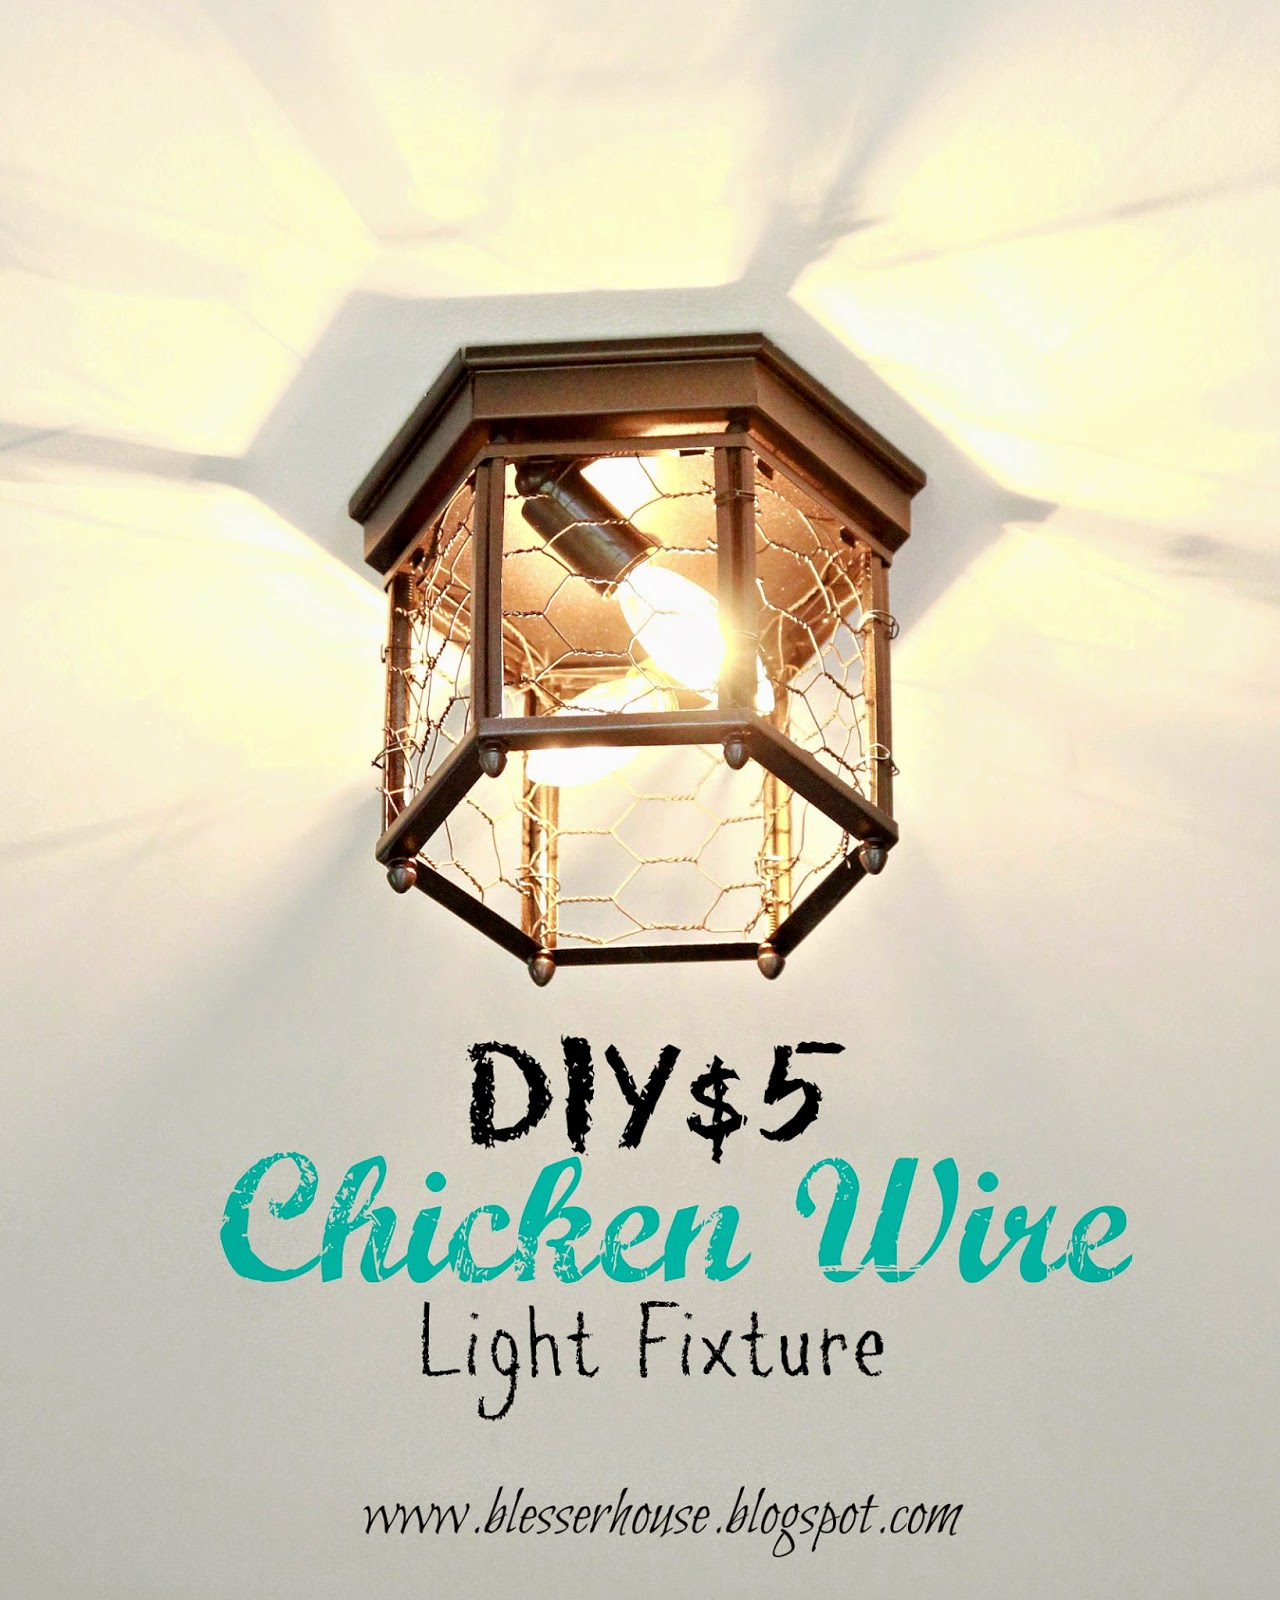 Wire lighting fixture Rustic Check Out That Cool Pattern They Make On The Ceiling So Much More Visually Interesting And With The Cost Of The 3 Fixture And About 1 Per Light For Blesser House Thrifted Chicken Wire Light Fixture Blesser House